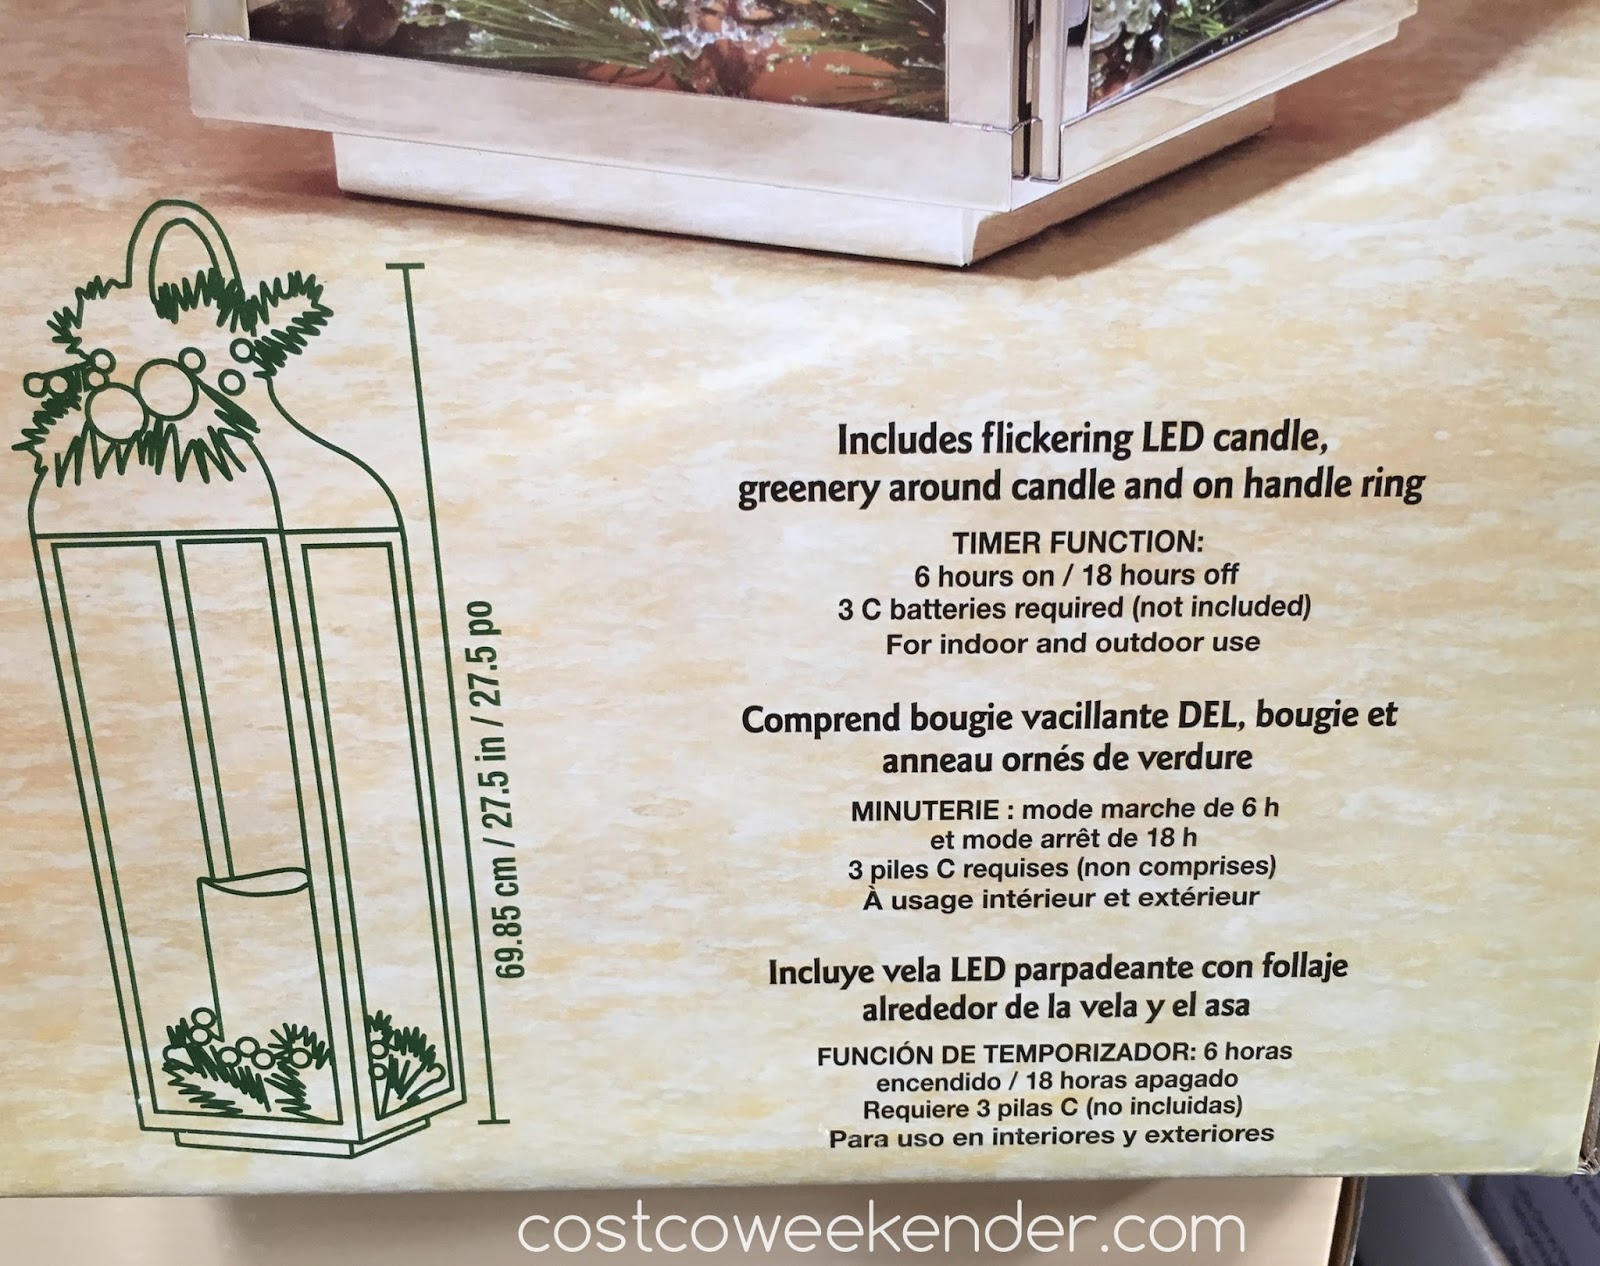 Costco 998633 - Stainless Steel Lantern - Functional lighting with stylish design